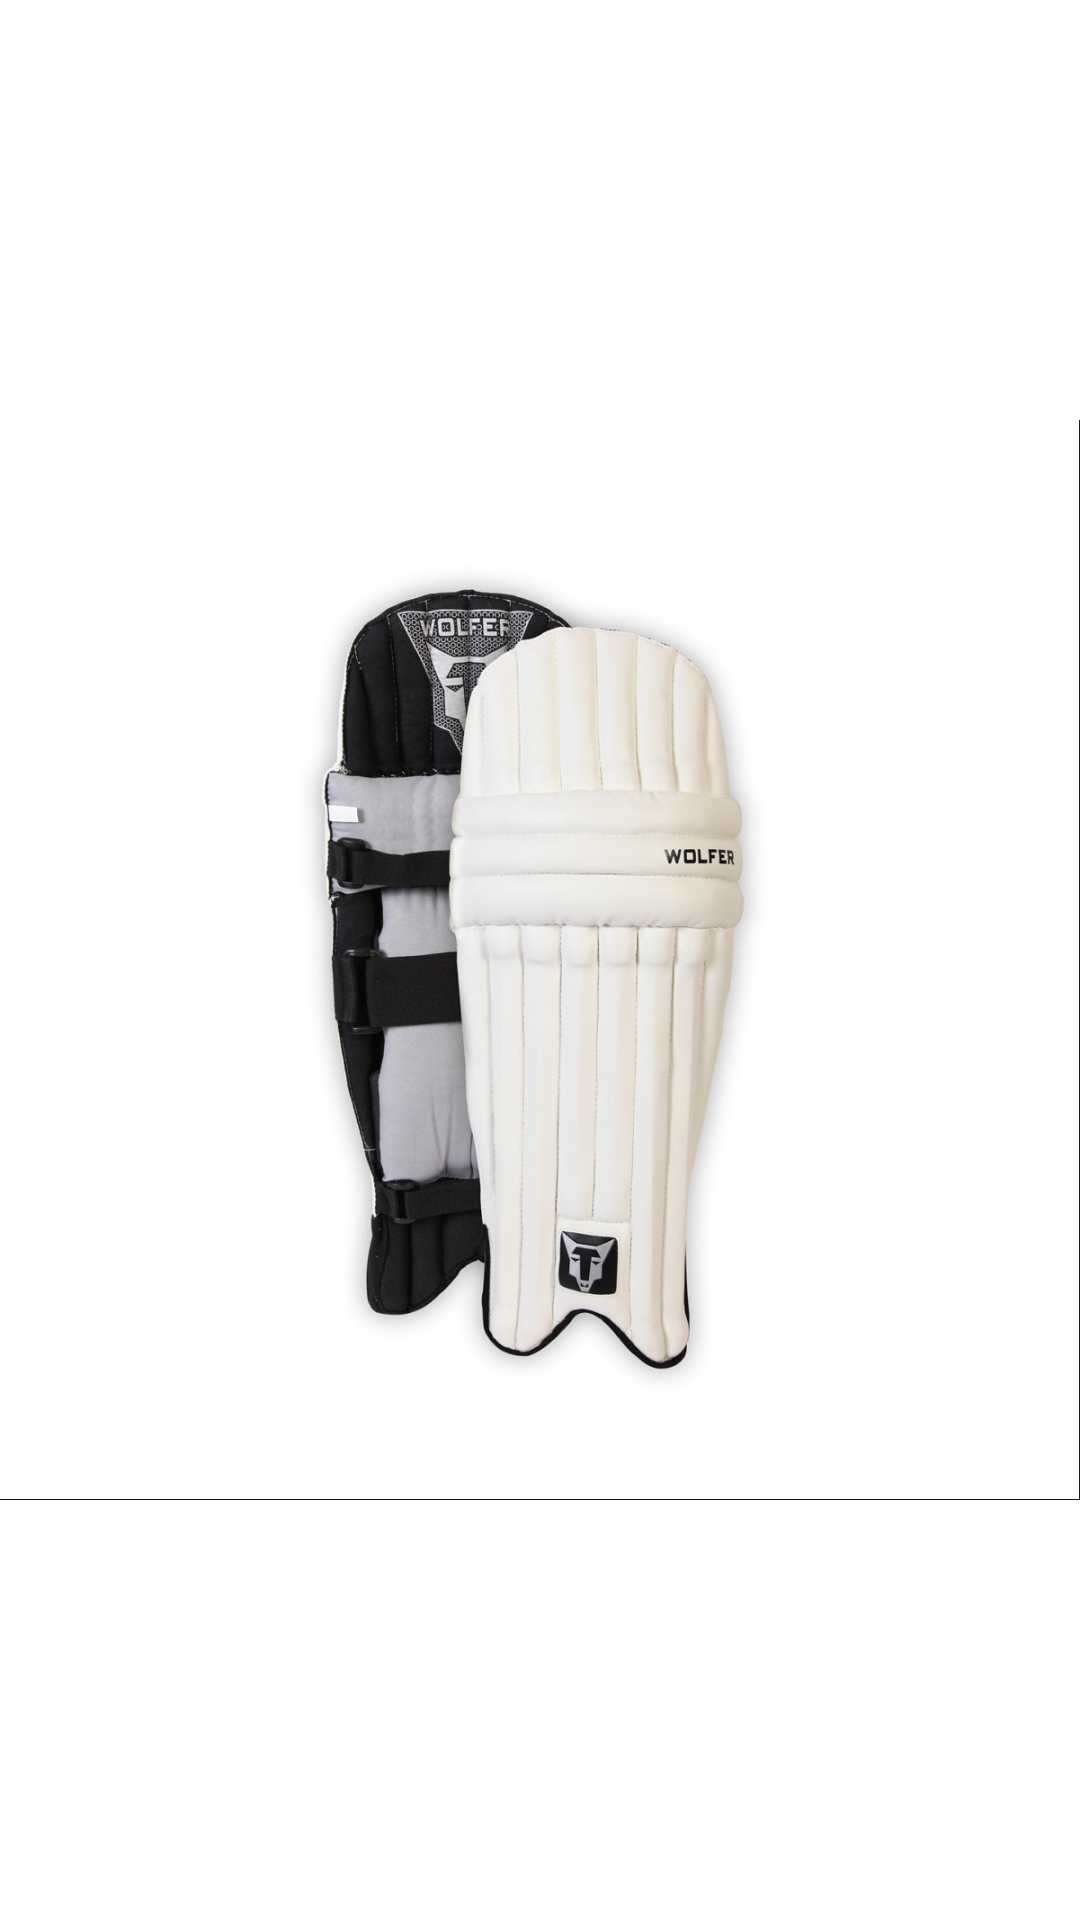 Wolfer Youth Batting Leg Guards